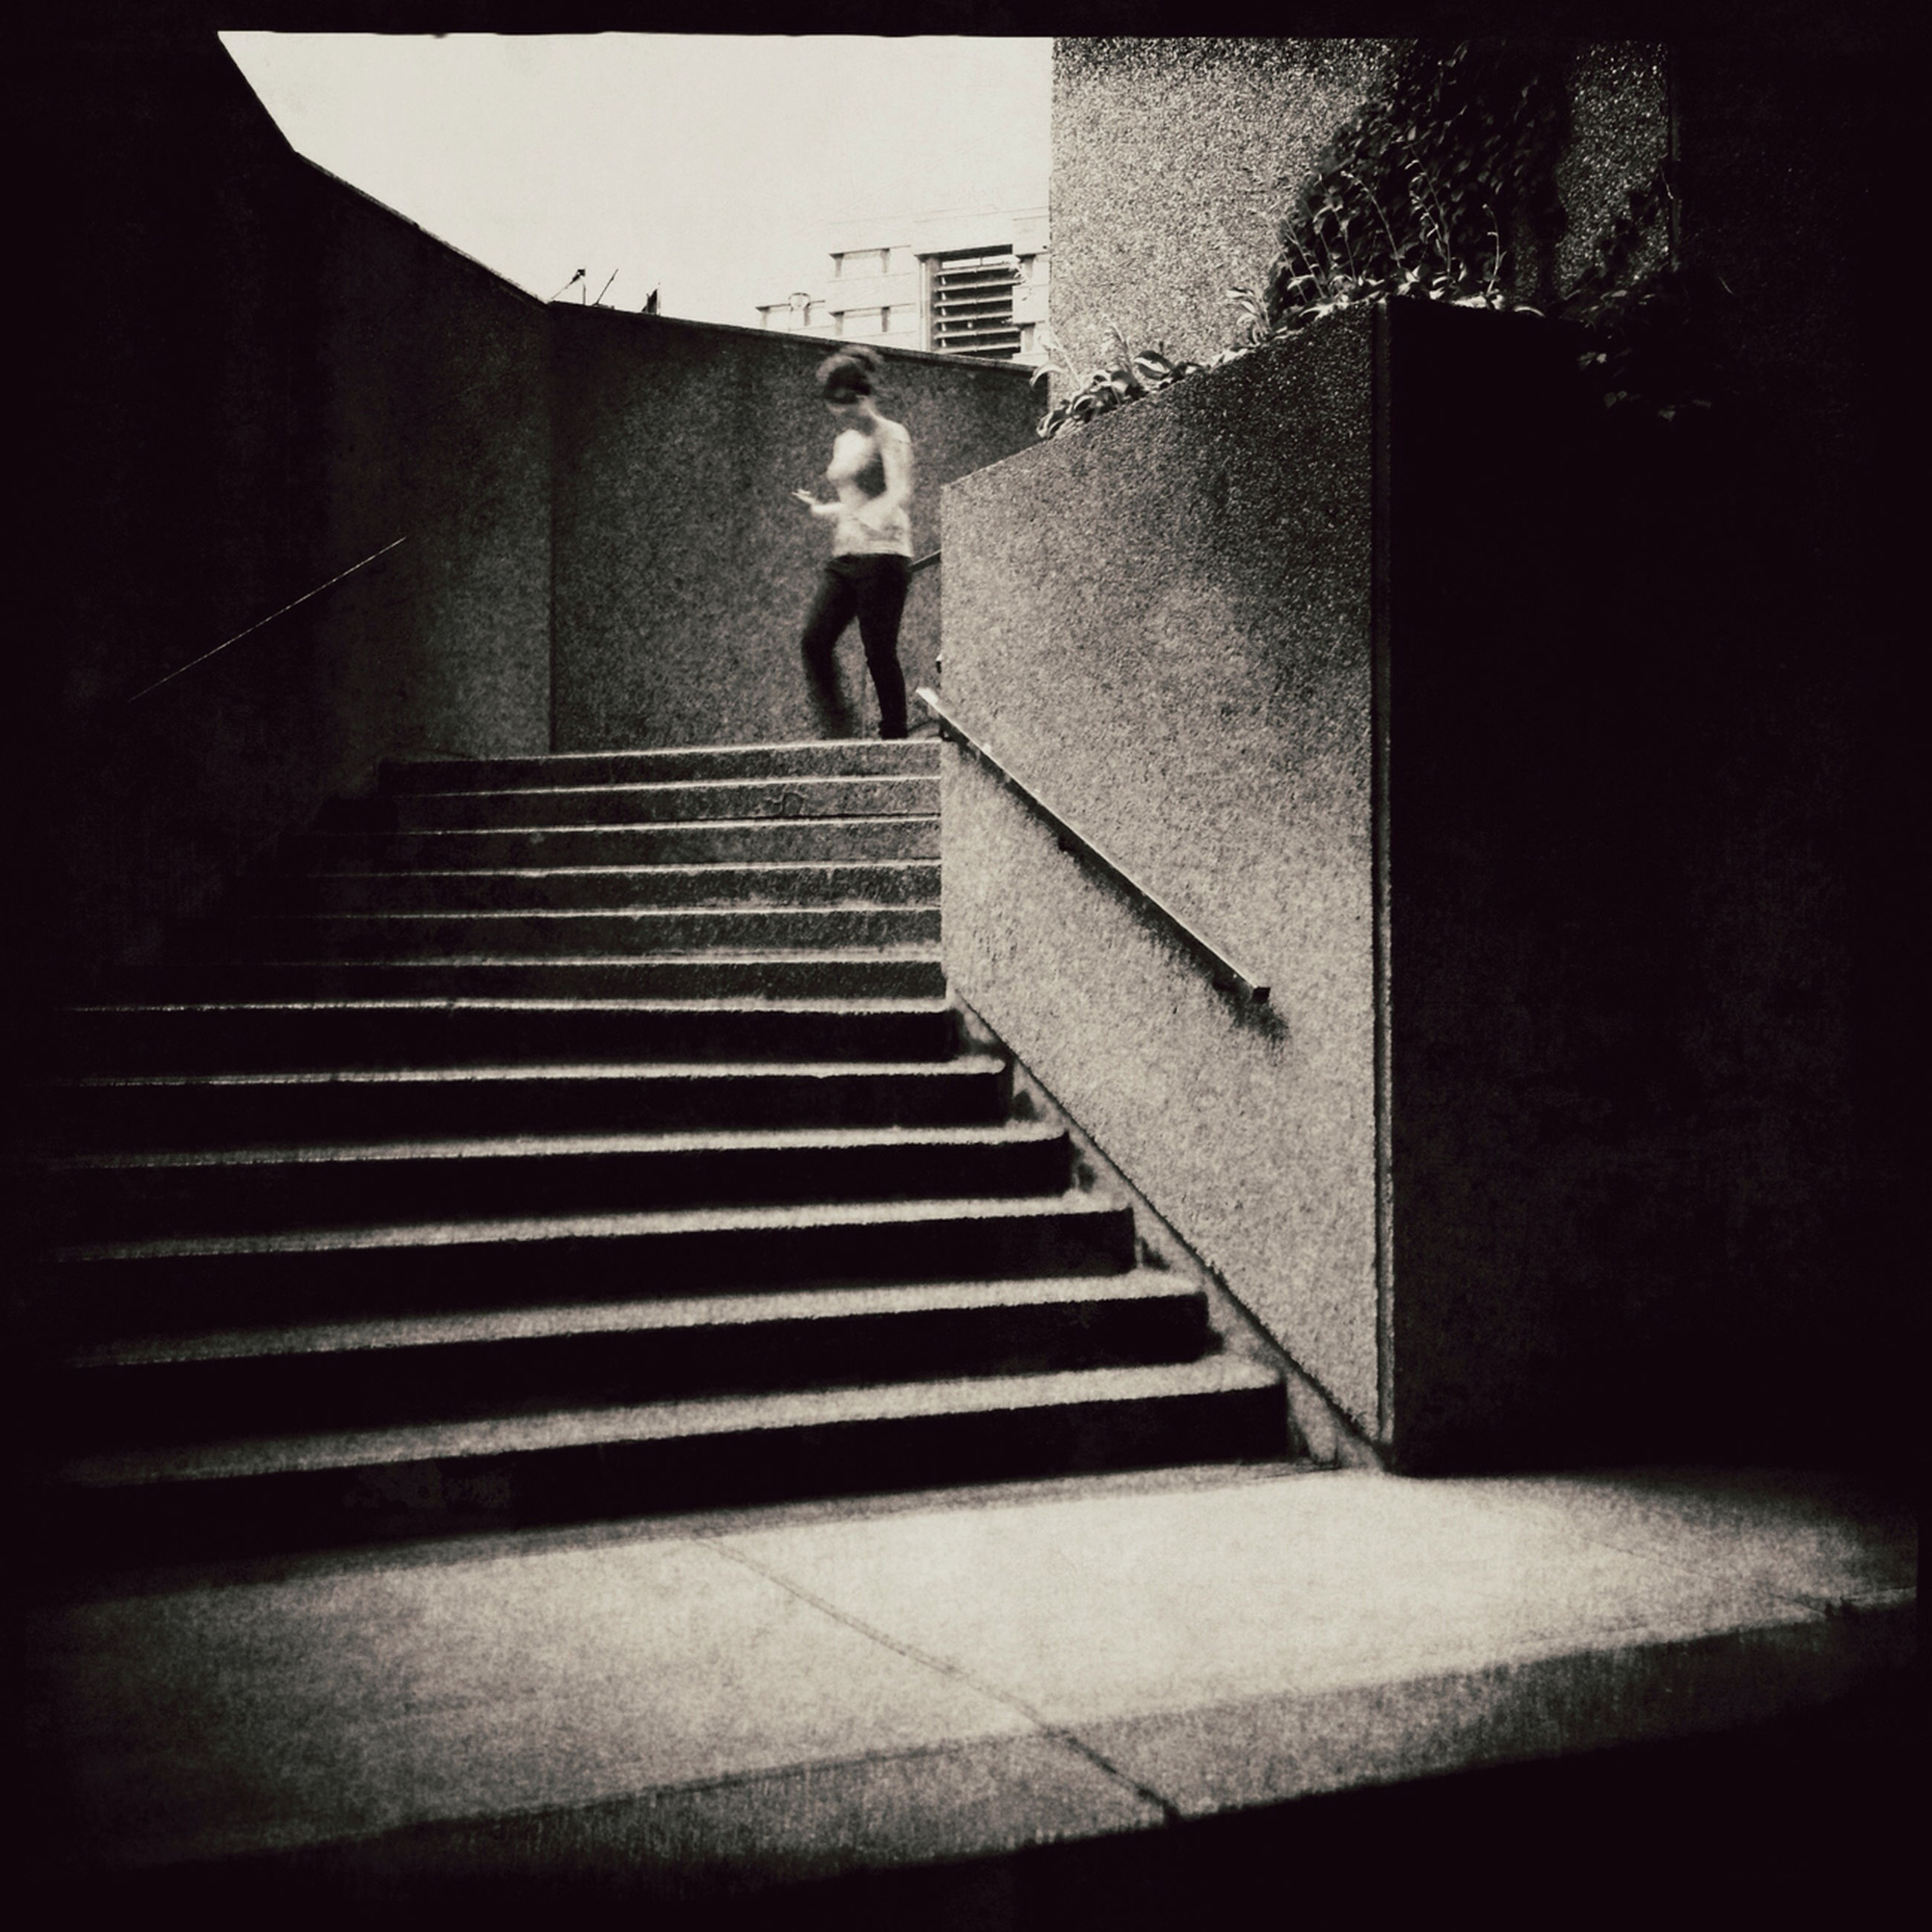 steps, steps and staircases, architecture, built structure, staircase, full length, the way forward, walking, building exterior, lifestyles, stairs, wall - building feature, rear view, leisure activity, standing, men, railing, person